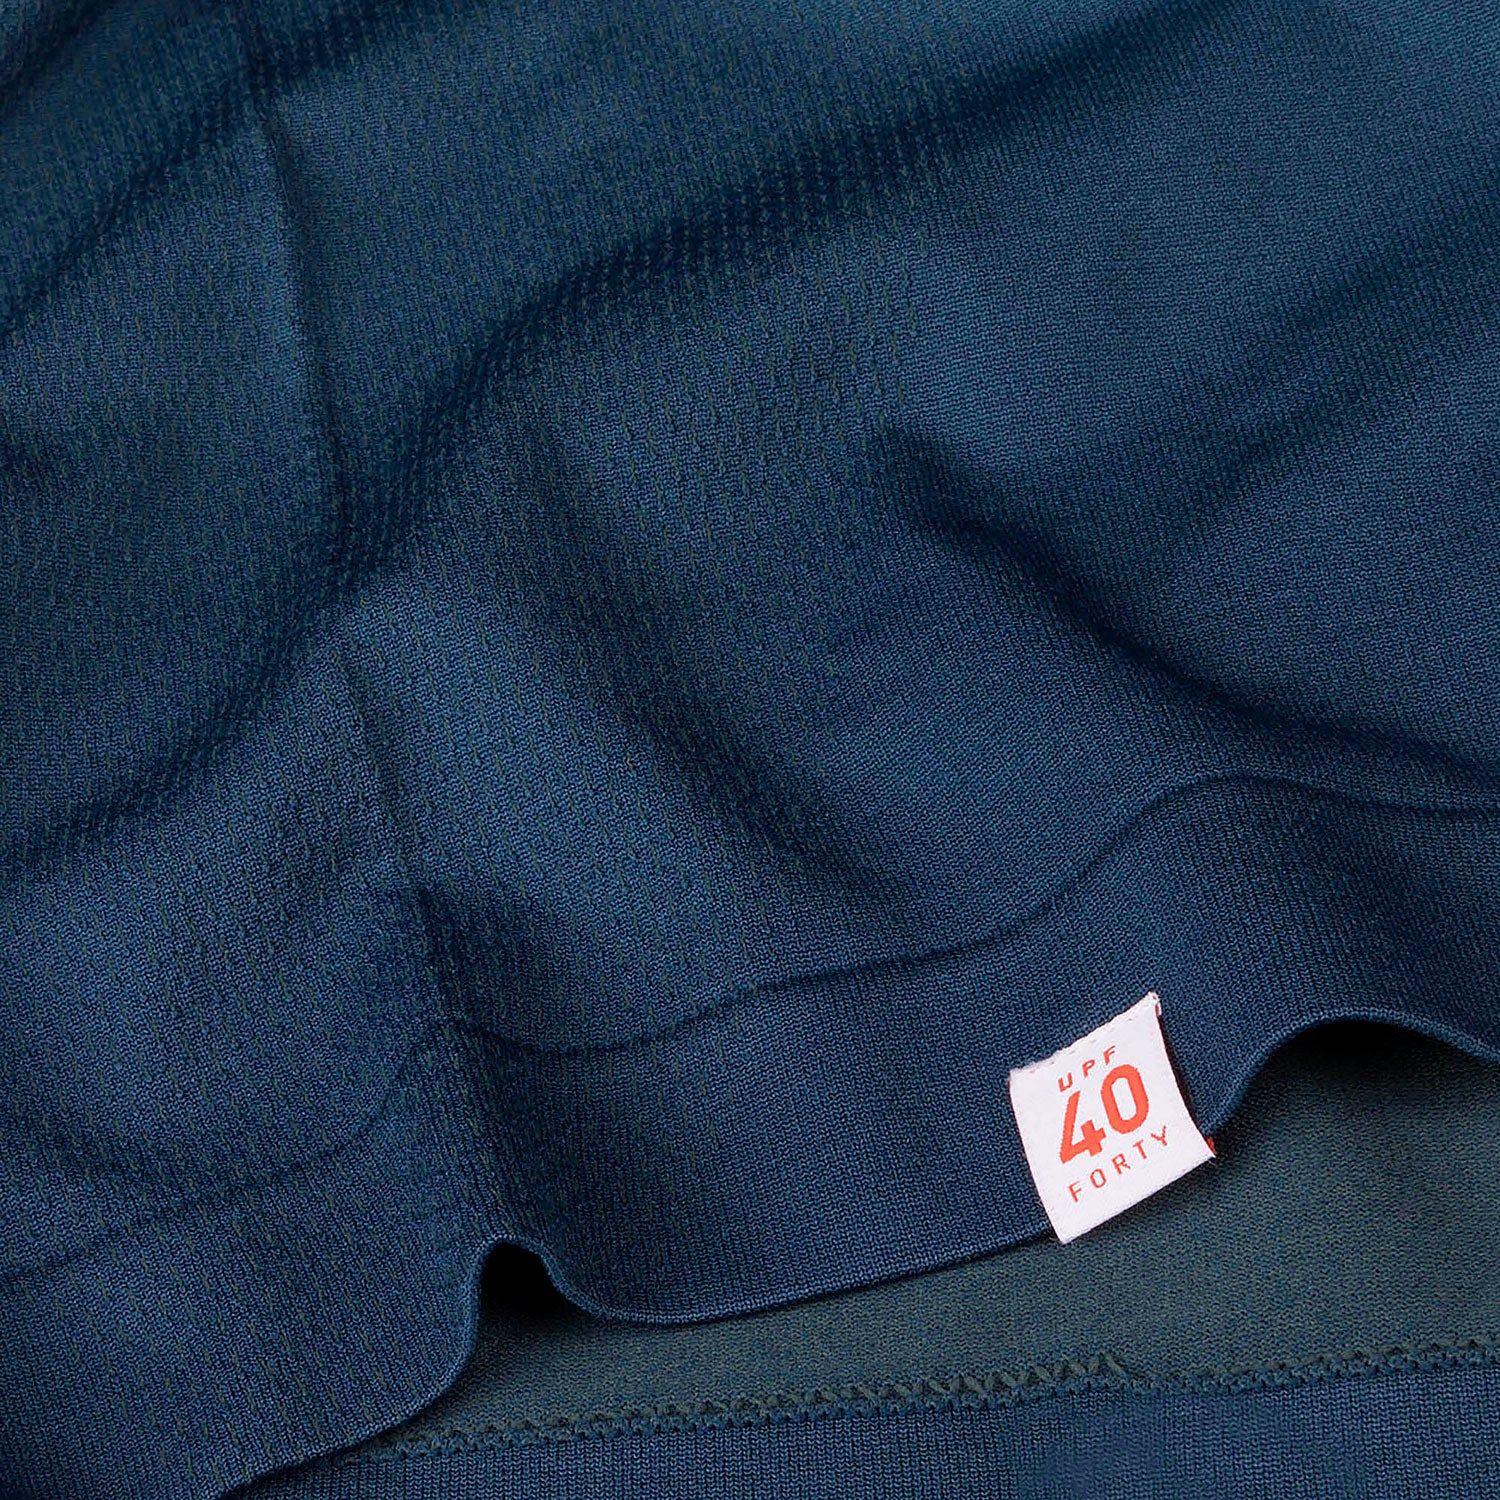 Bottom hem with upt 40 label